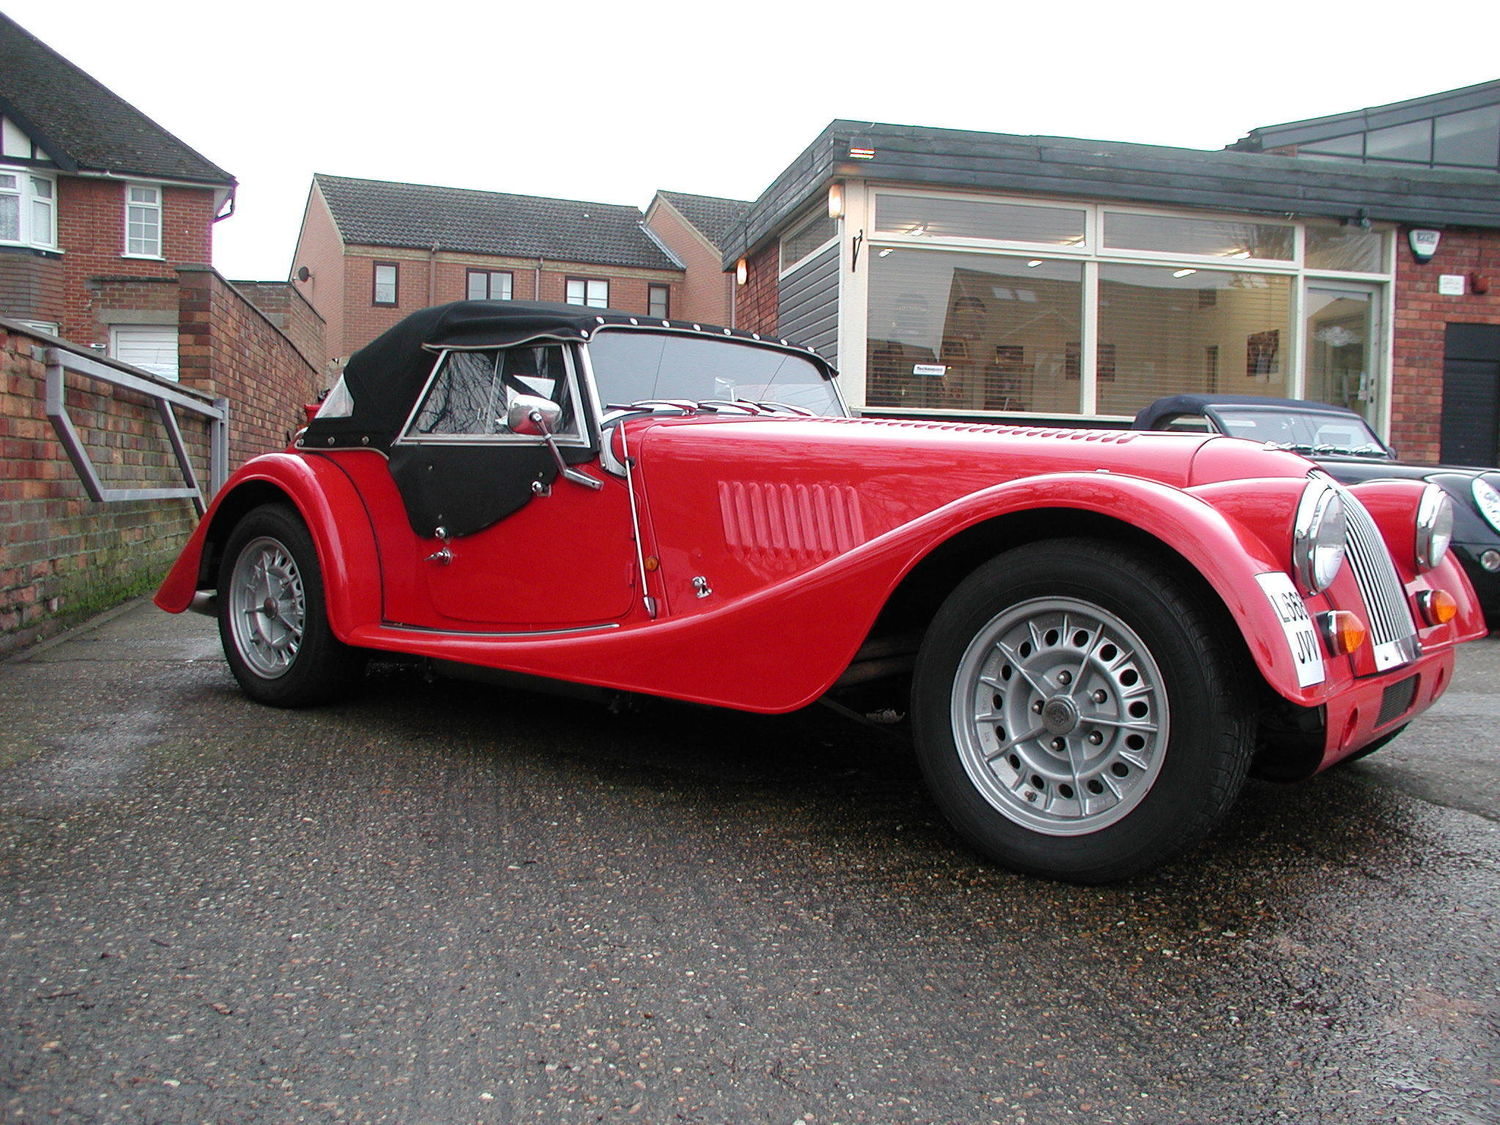 SOLD - 1993 Corsa Red Morgan +8